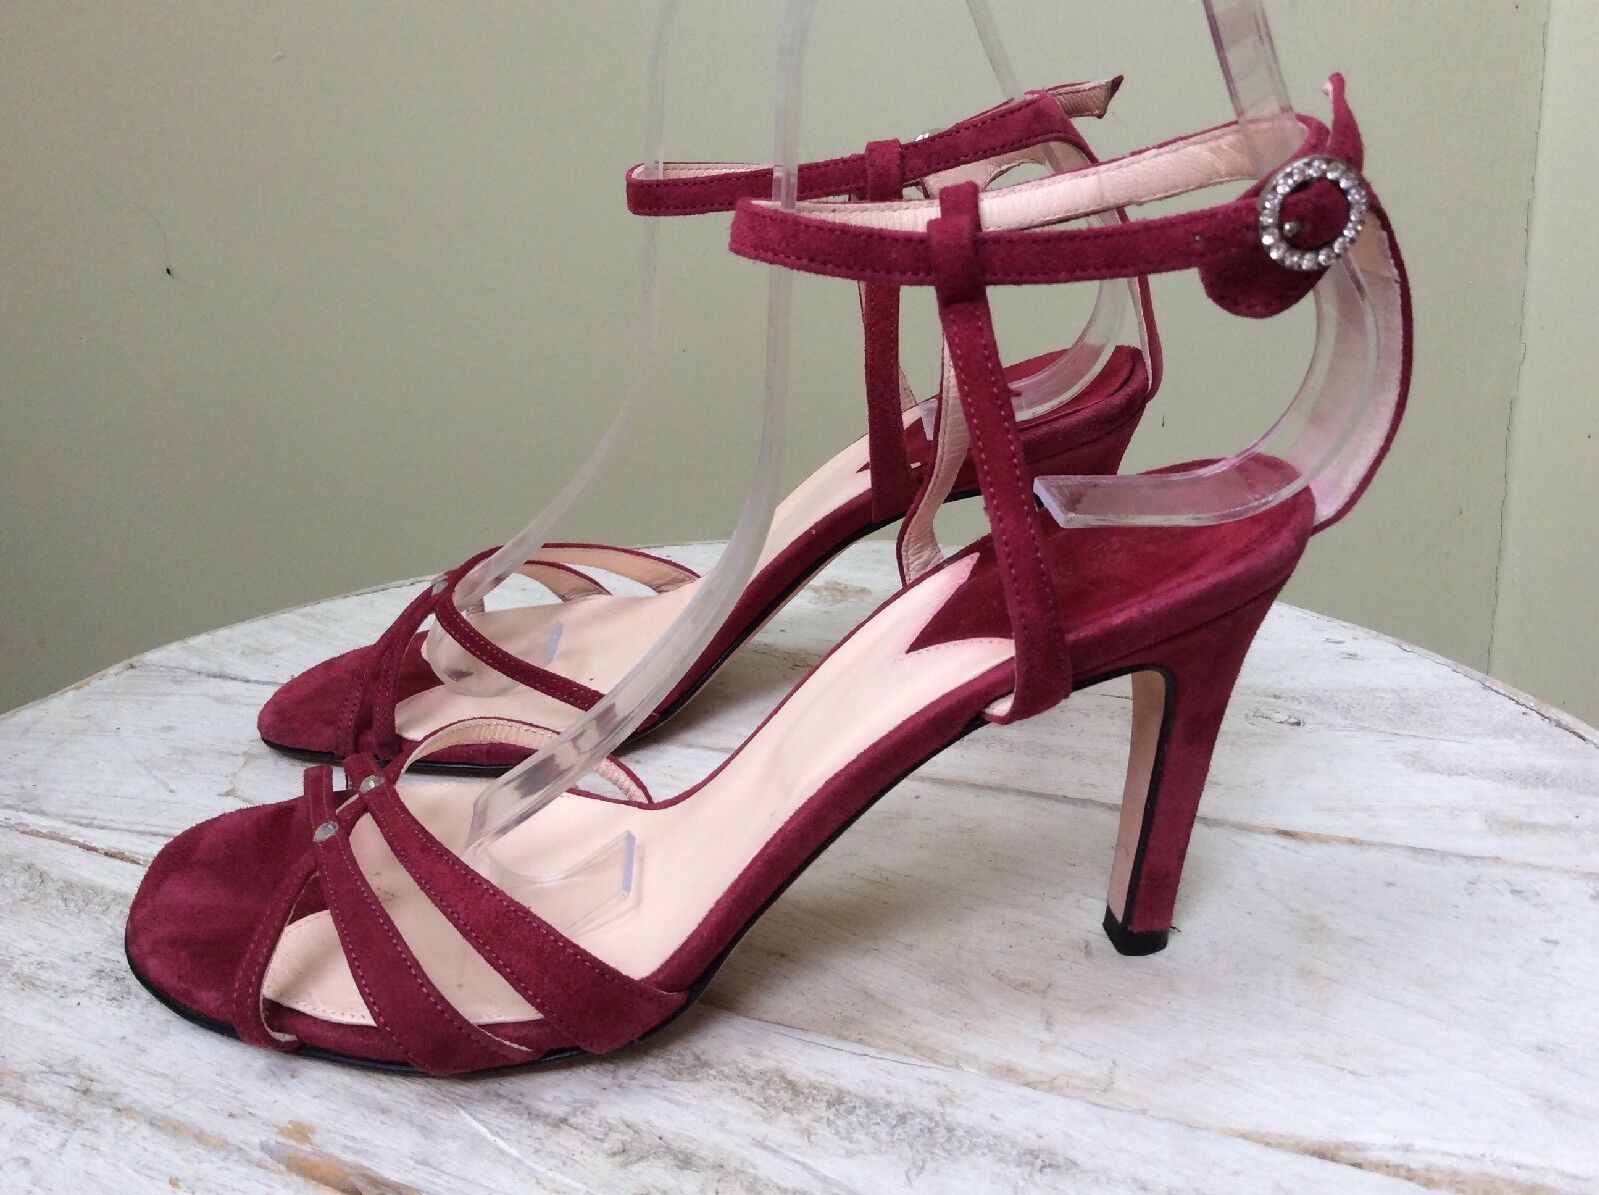 HOBBS Rosa SUEDE STRAPPY DIAMANTE SANDALS Größe 37.5 37.5 37.5 MADE IN ITALY db565d